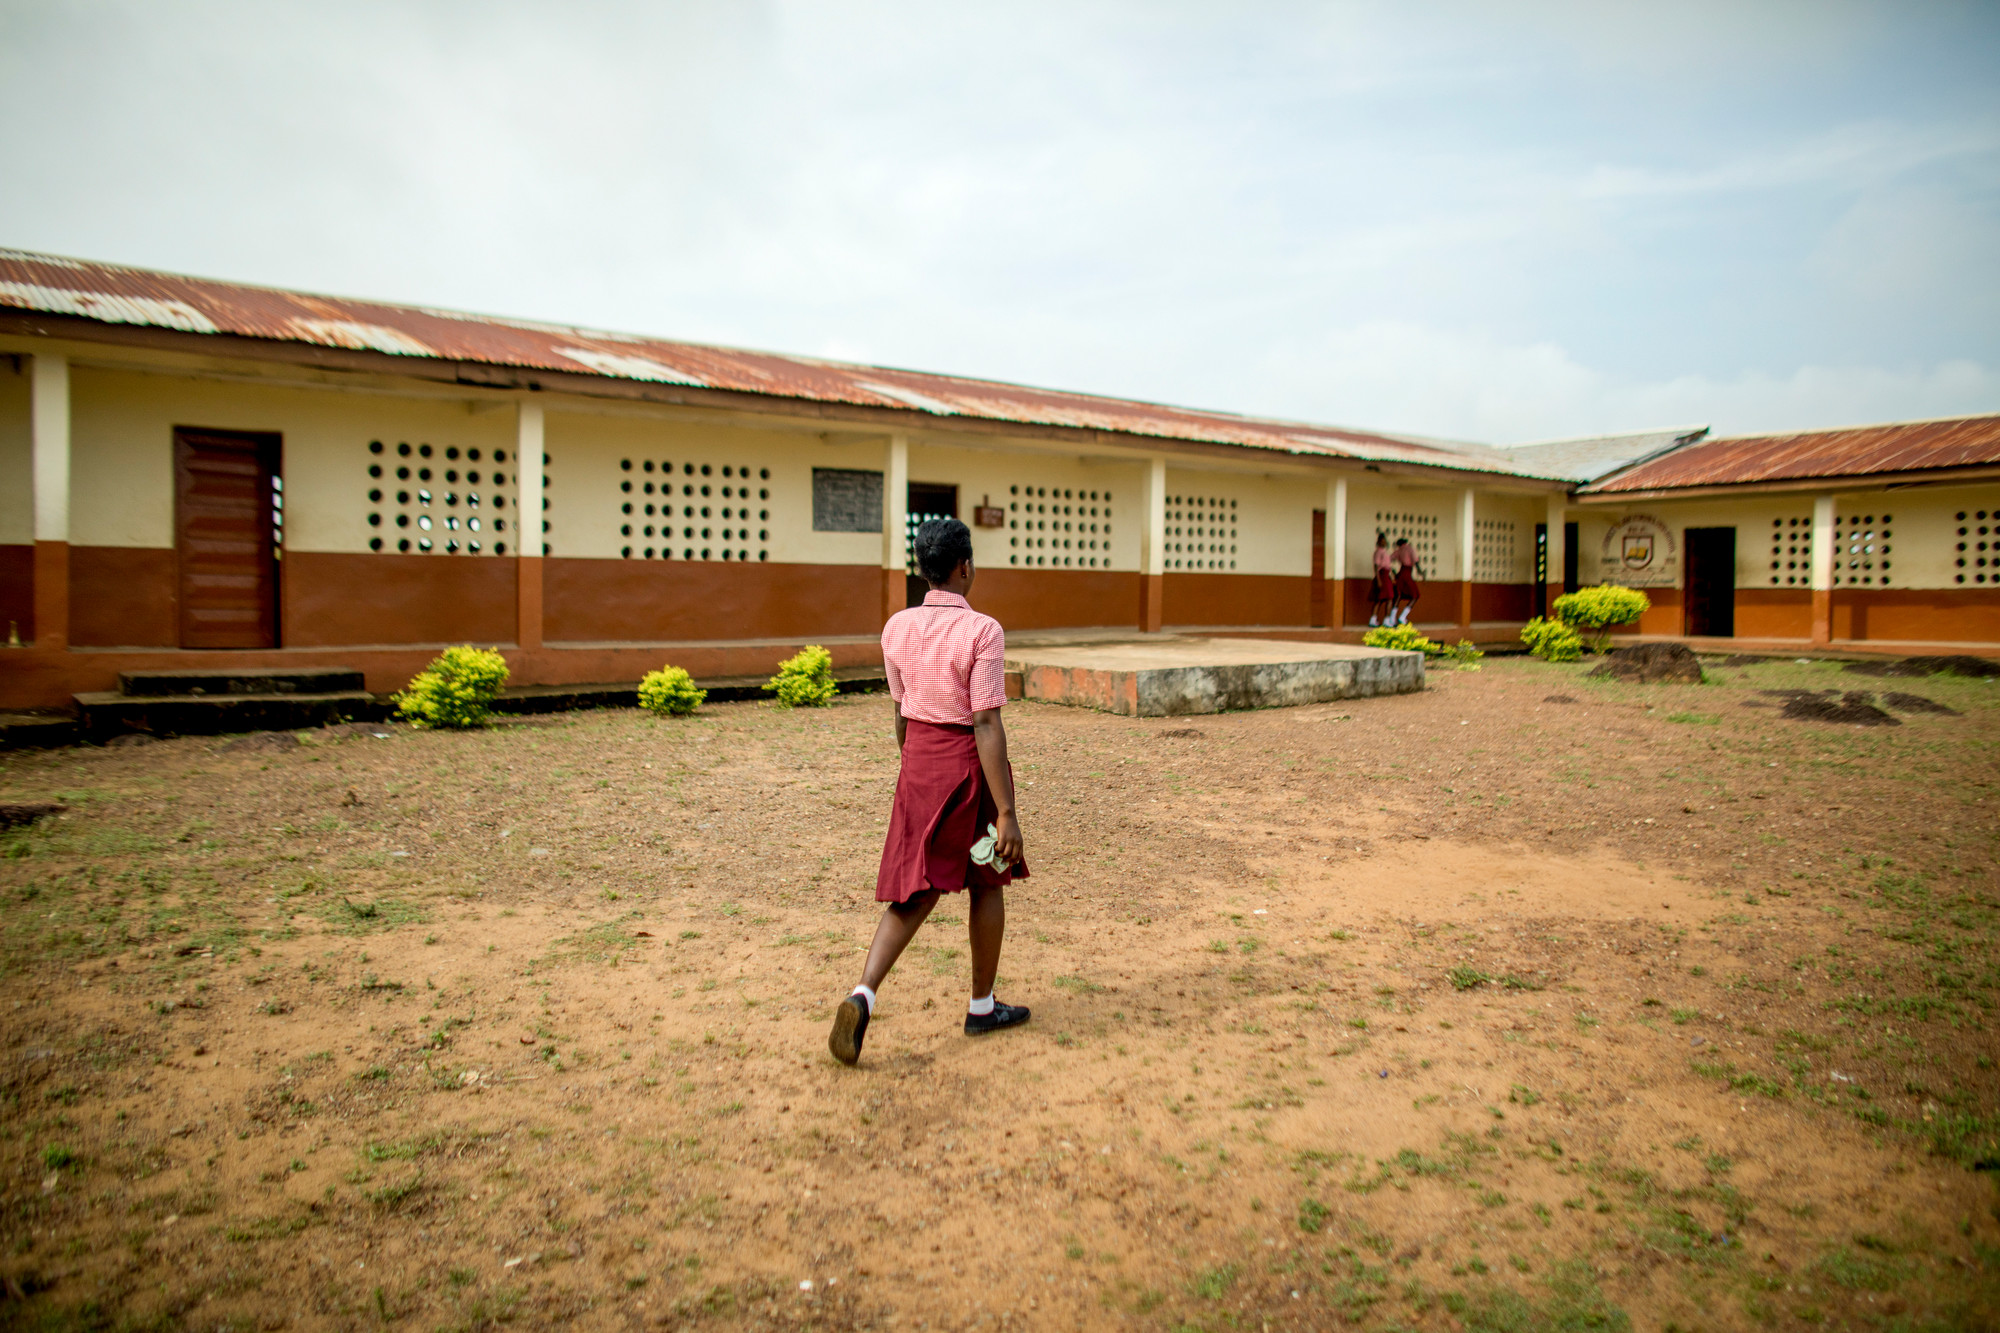 A girl walks in the dirt courtyard of a school in Sierra Leone.